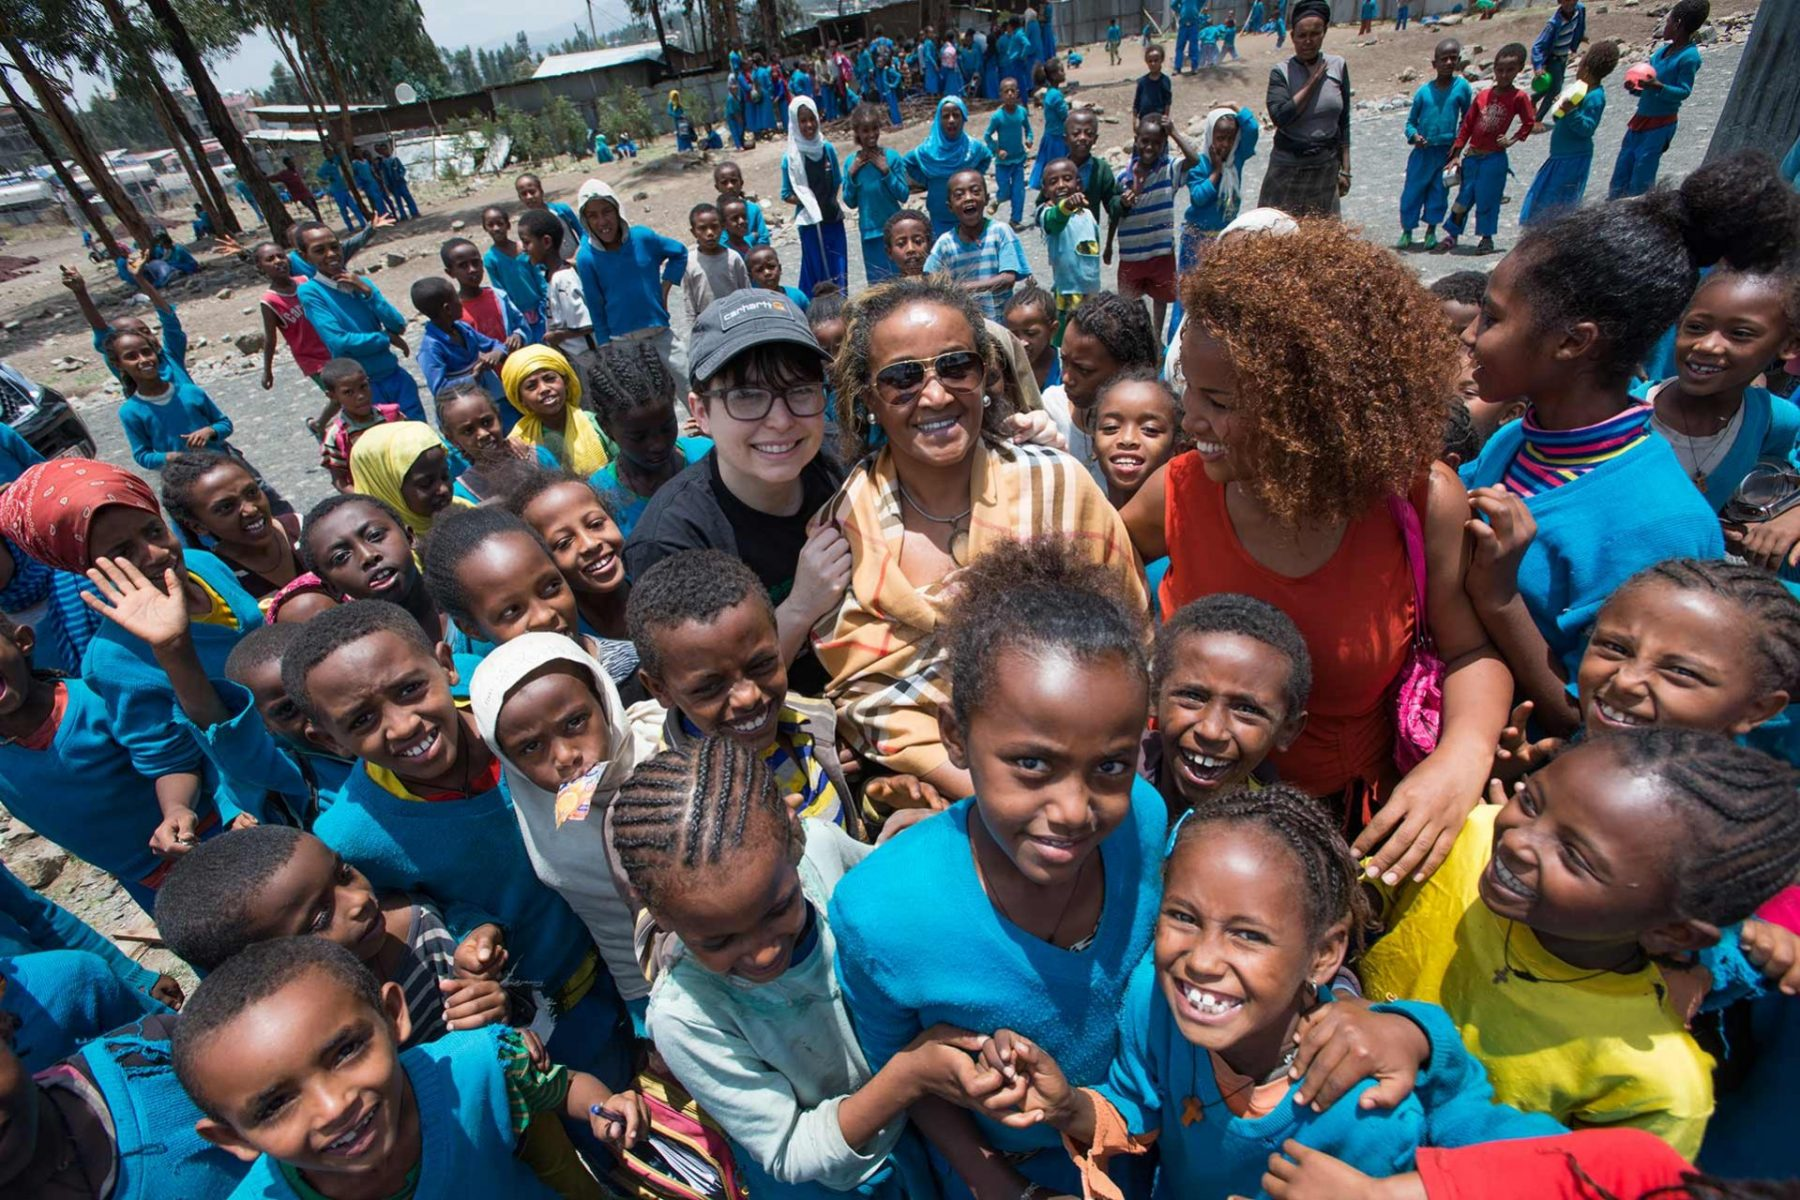 Dawn Moncrief (L), founder of A Well-Fed World, with Seble Nebiyeloul (R, sunglasses), founder of International Fund for Africa. Both of their organizations bring plant-based nutritious foods to schools in Africa. Ethiopia, 2016